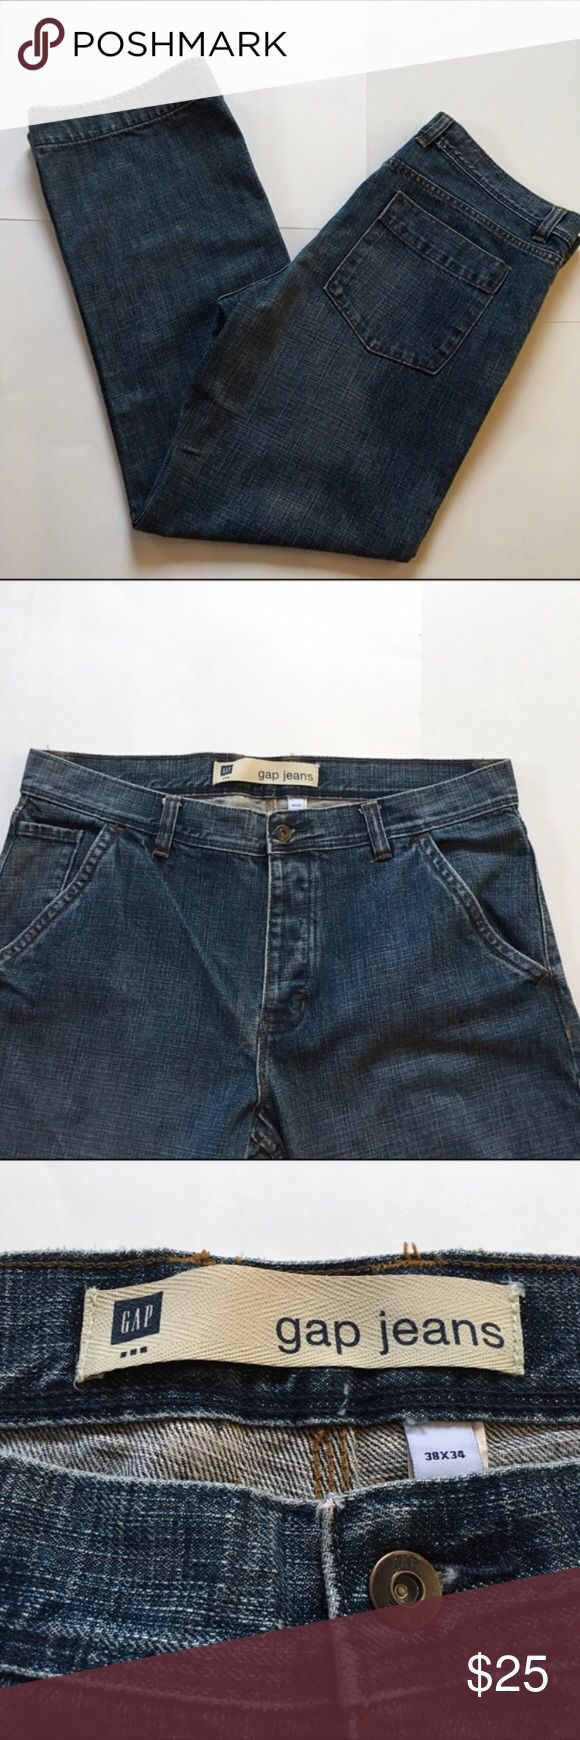 Gap men's jeans Excellent condition. 38 waist, 34 length GAP Jeans